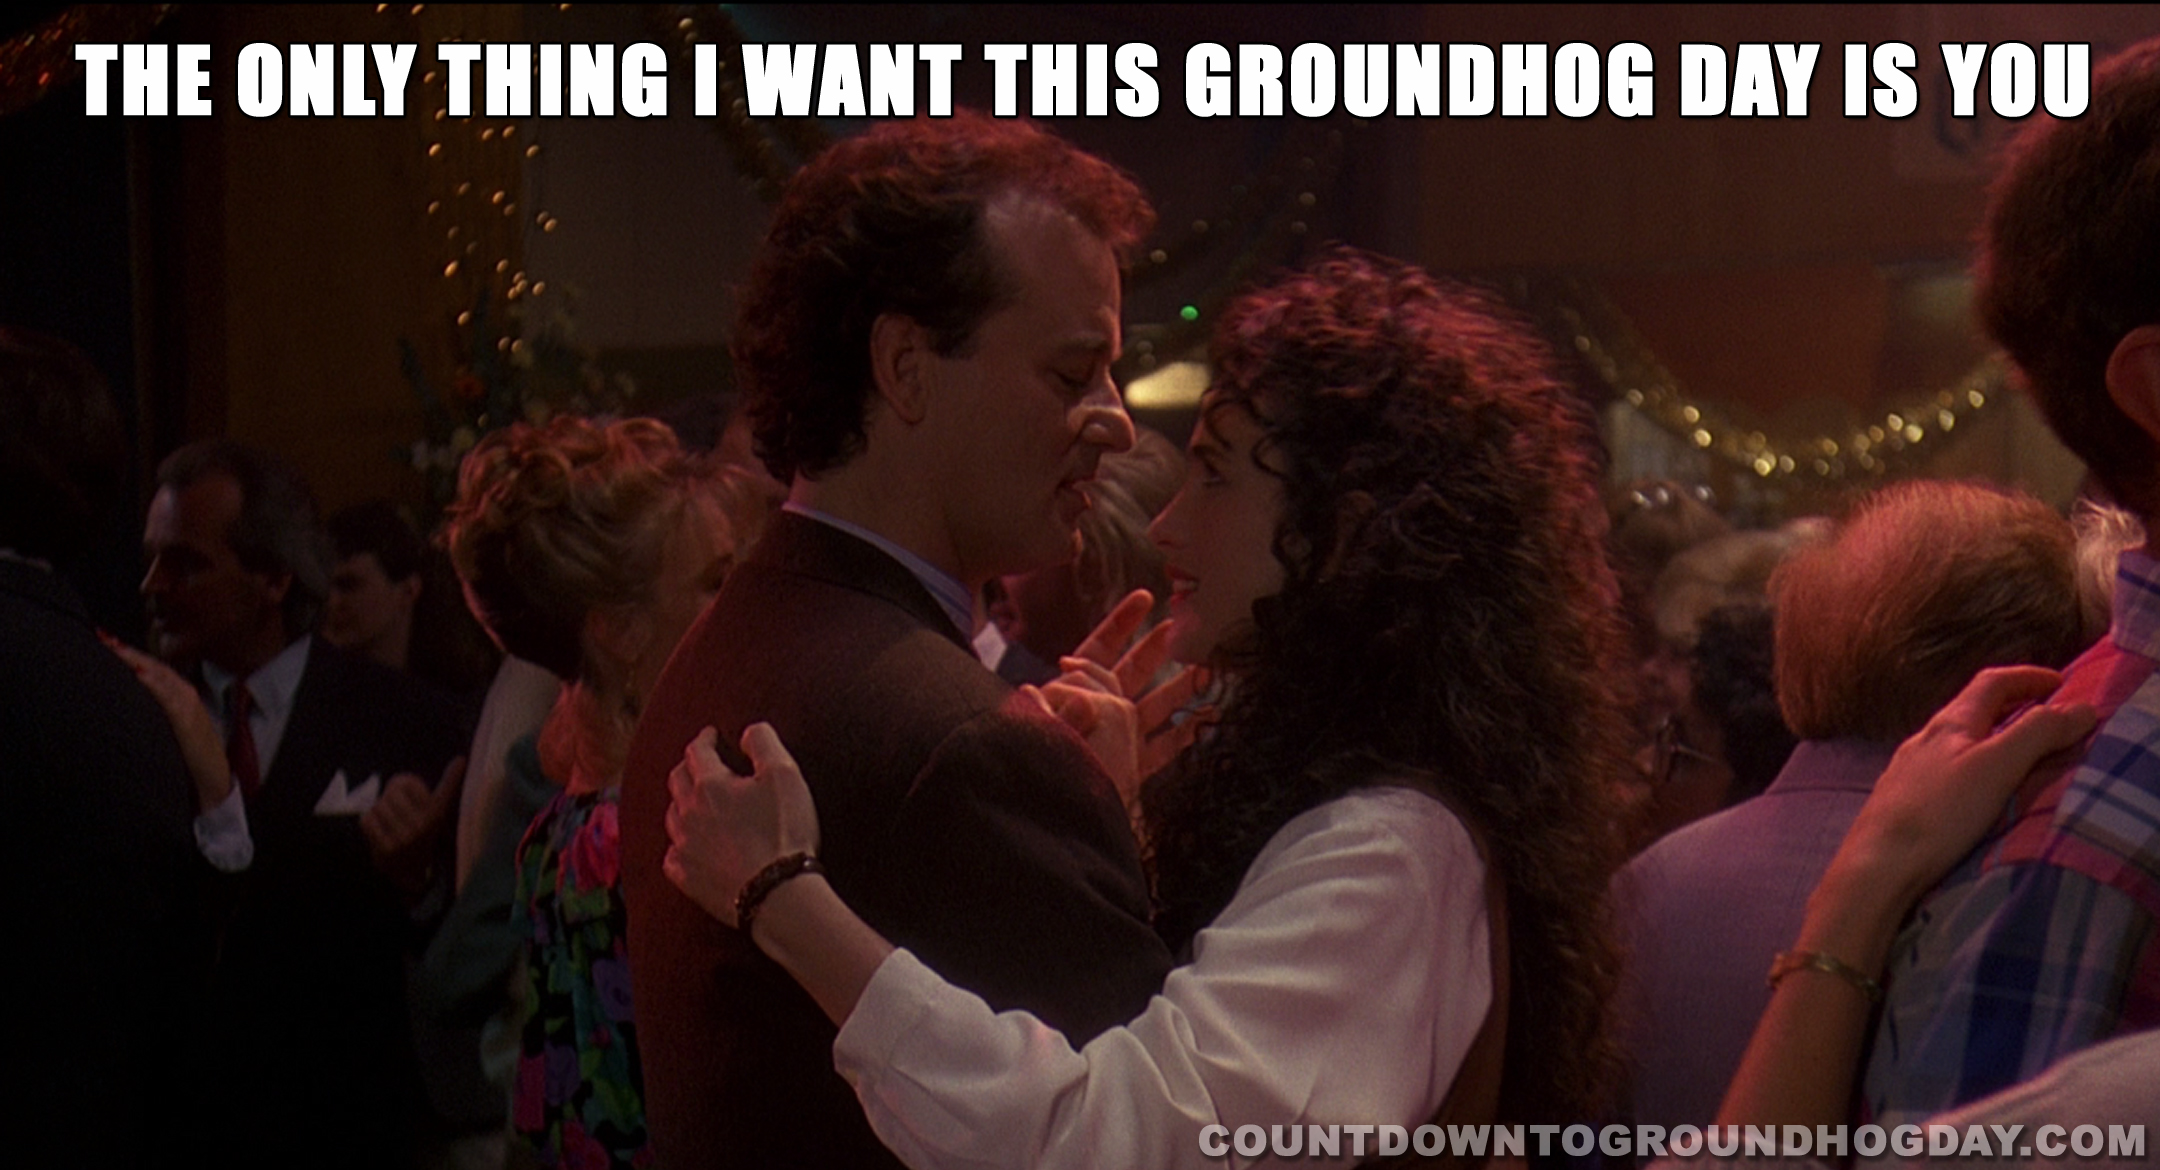 The only thing I want this Groundhog Day is you